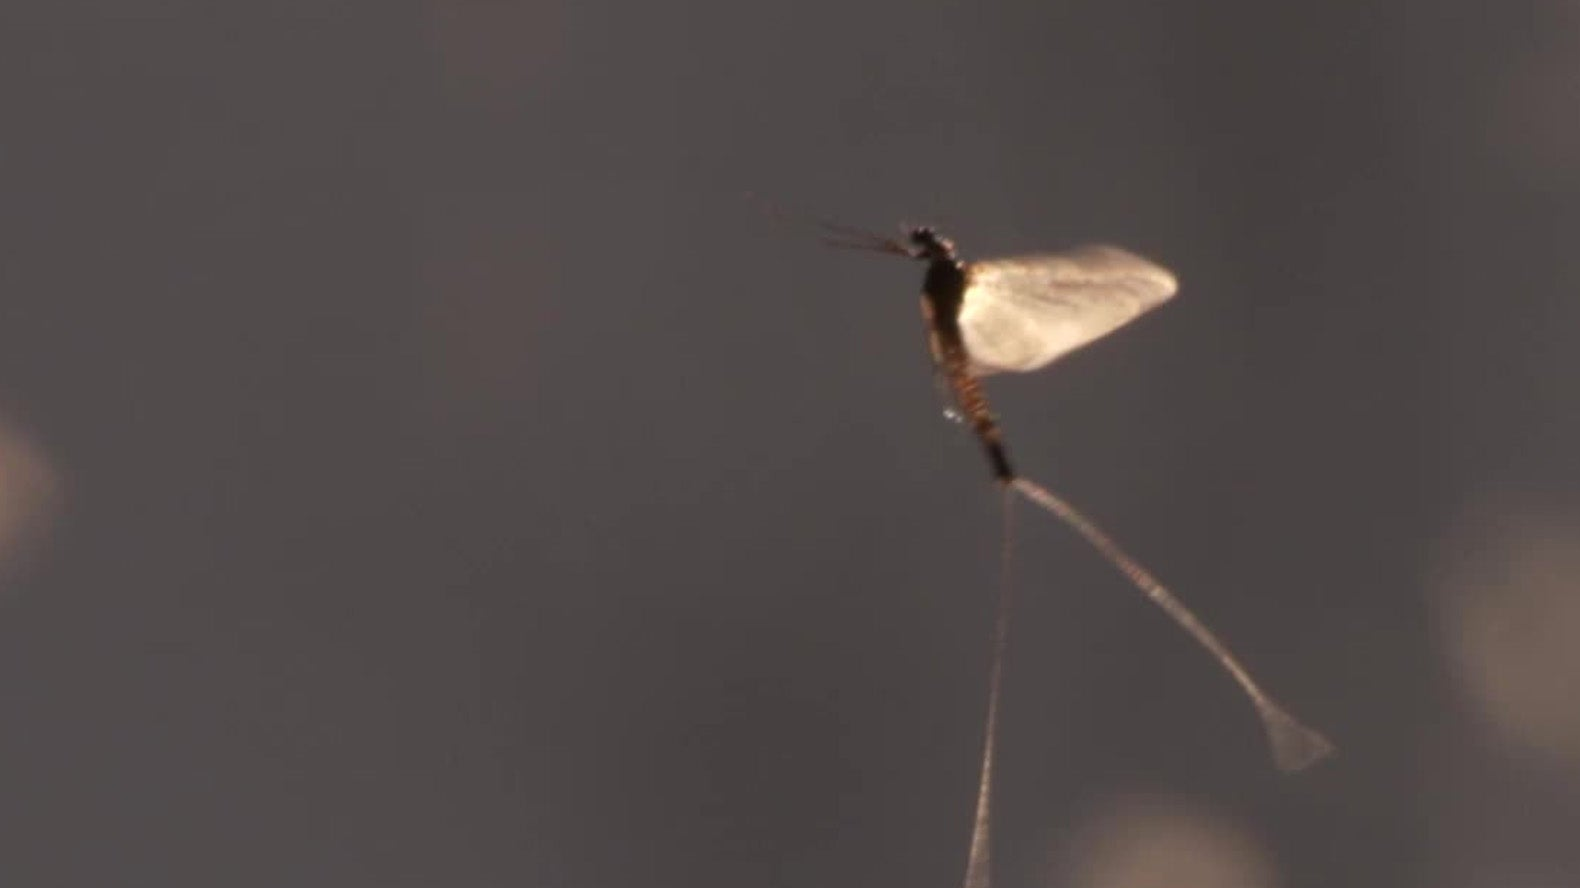 Large Decline in Mayflies Population in the U.S. a Warning Sign